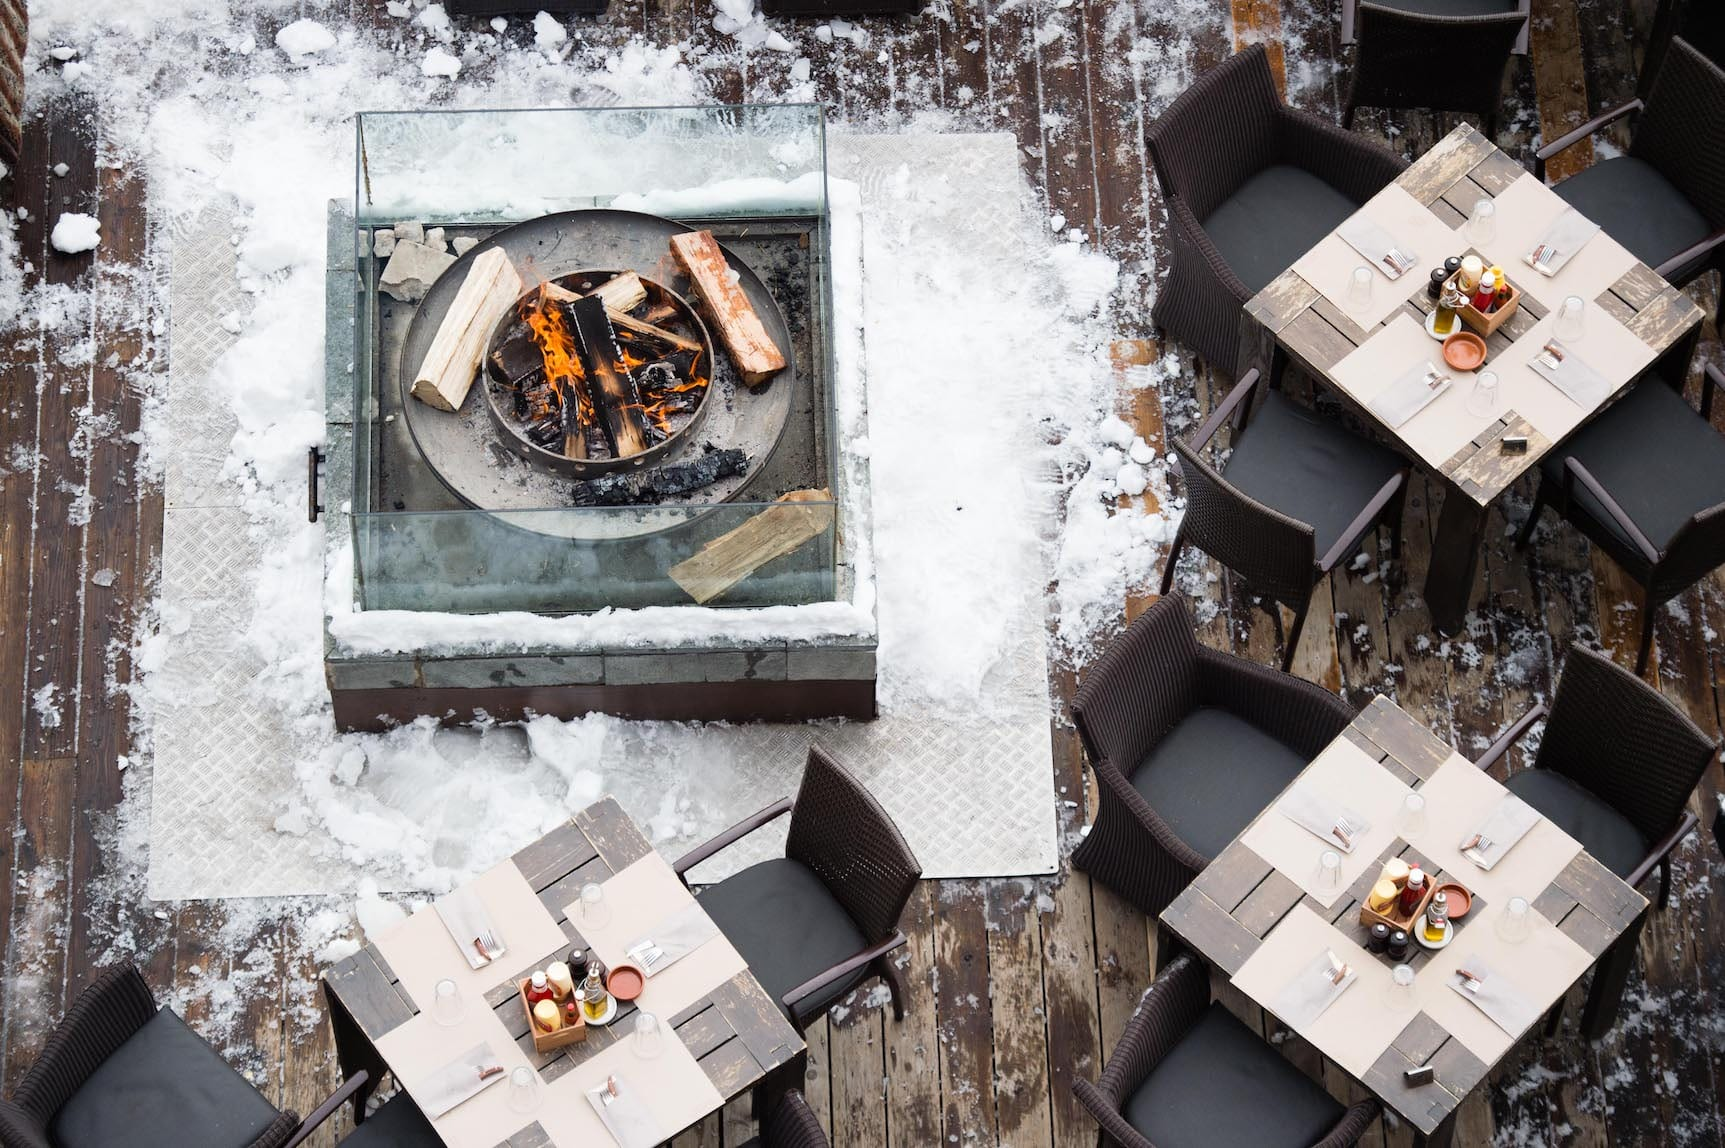 fire-ice-from-above-portetta-amy-murrell-2